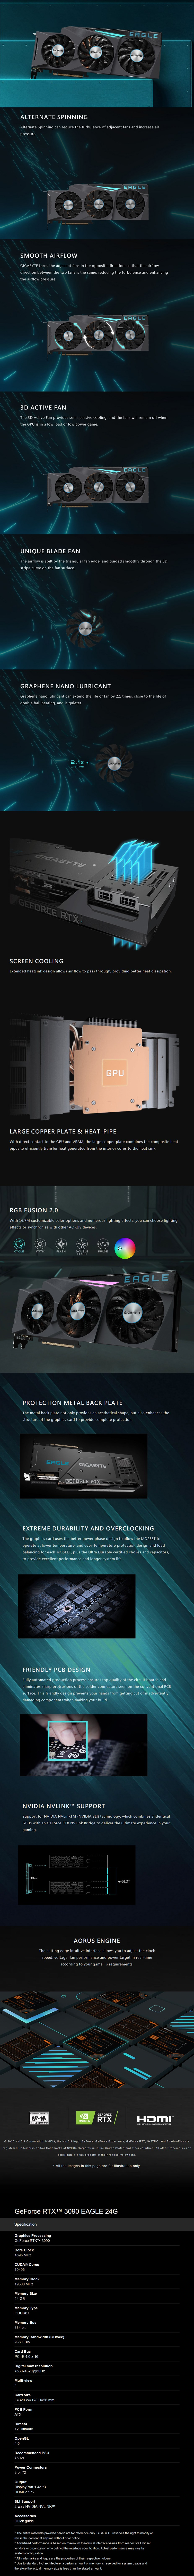 Gigabyte GeForce RTX 3090 EAGLE 24GB Video Card - Overview 1